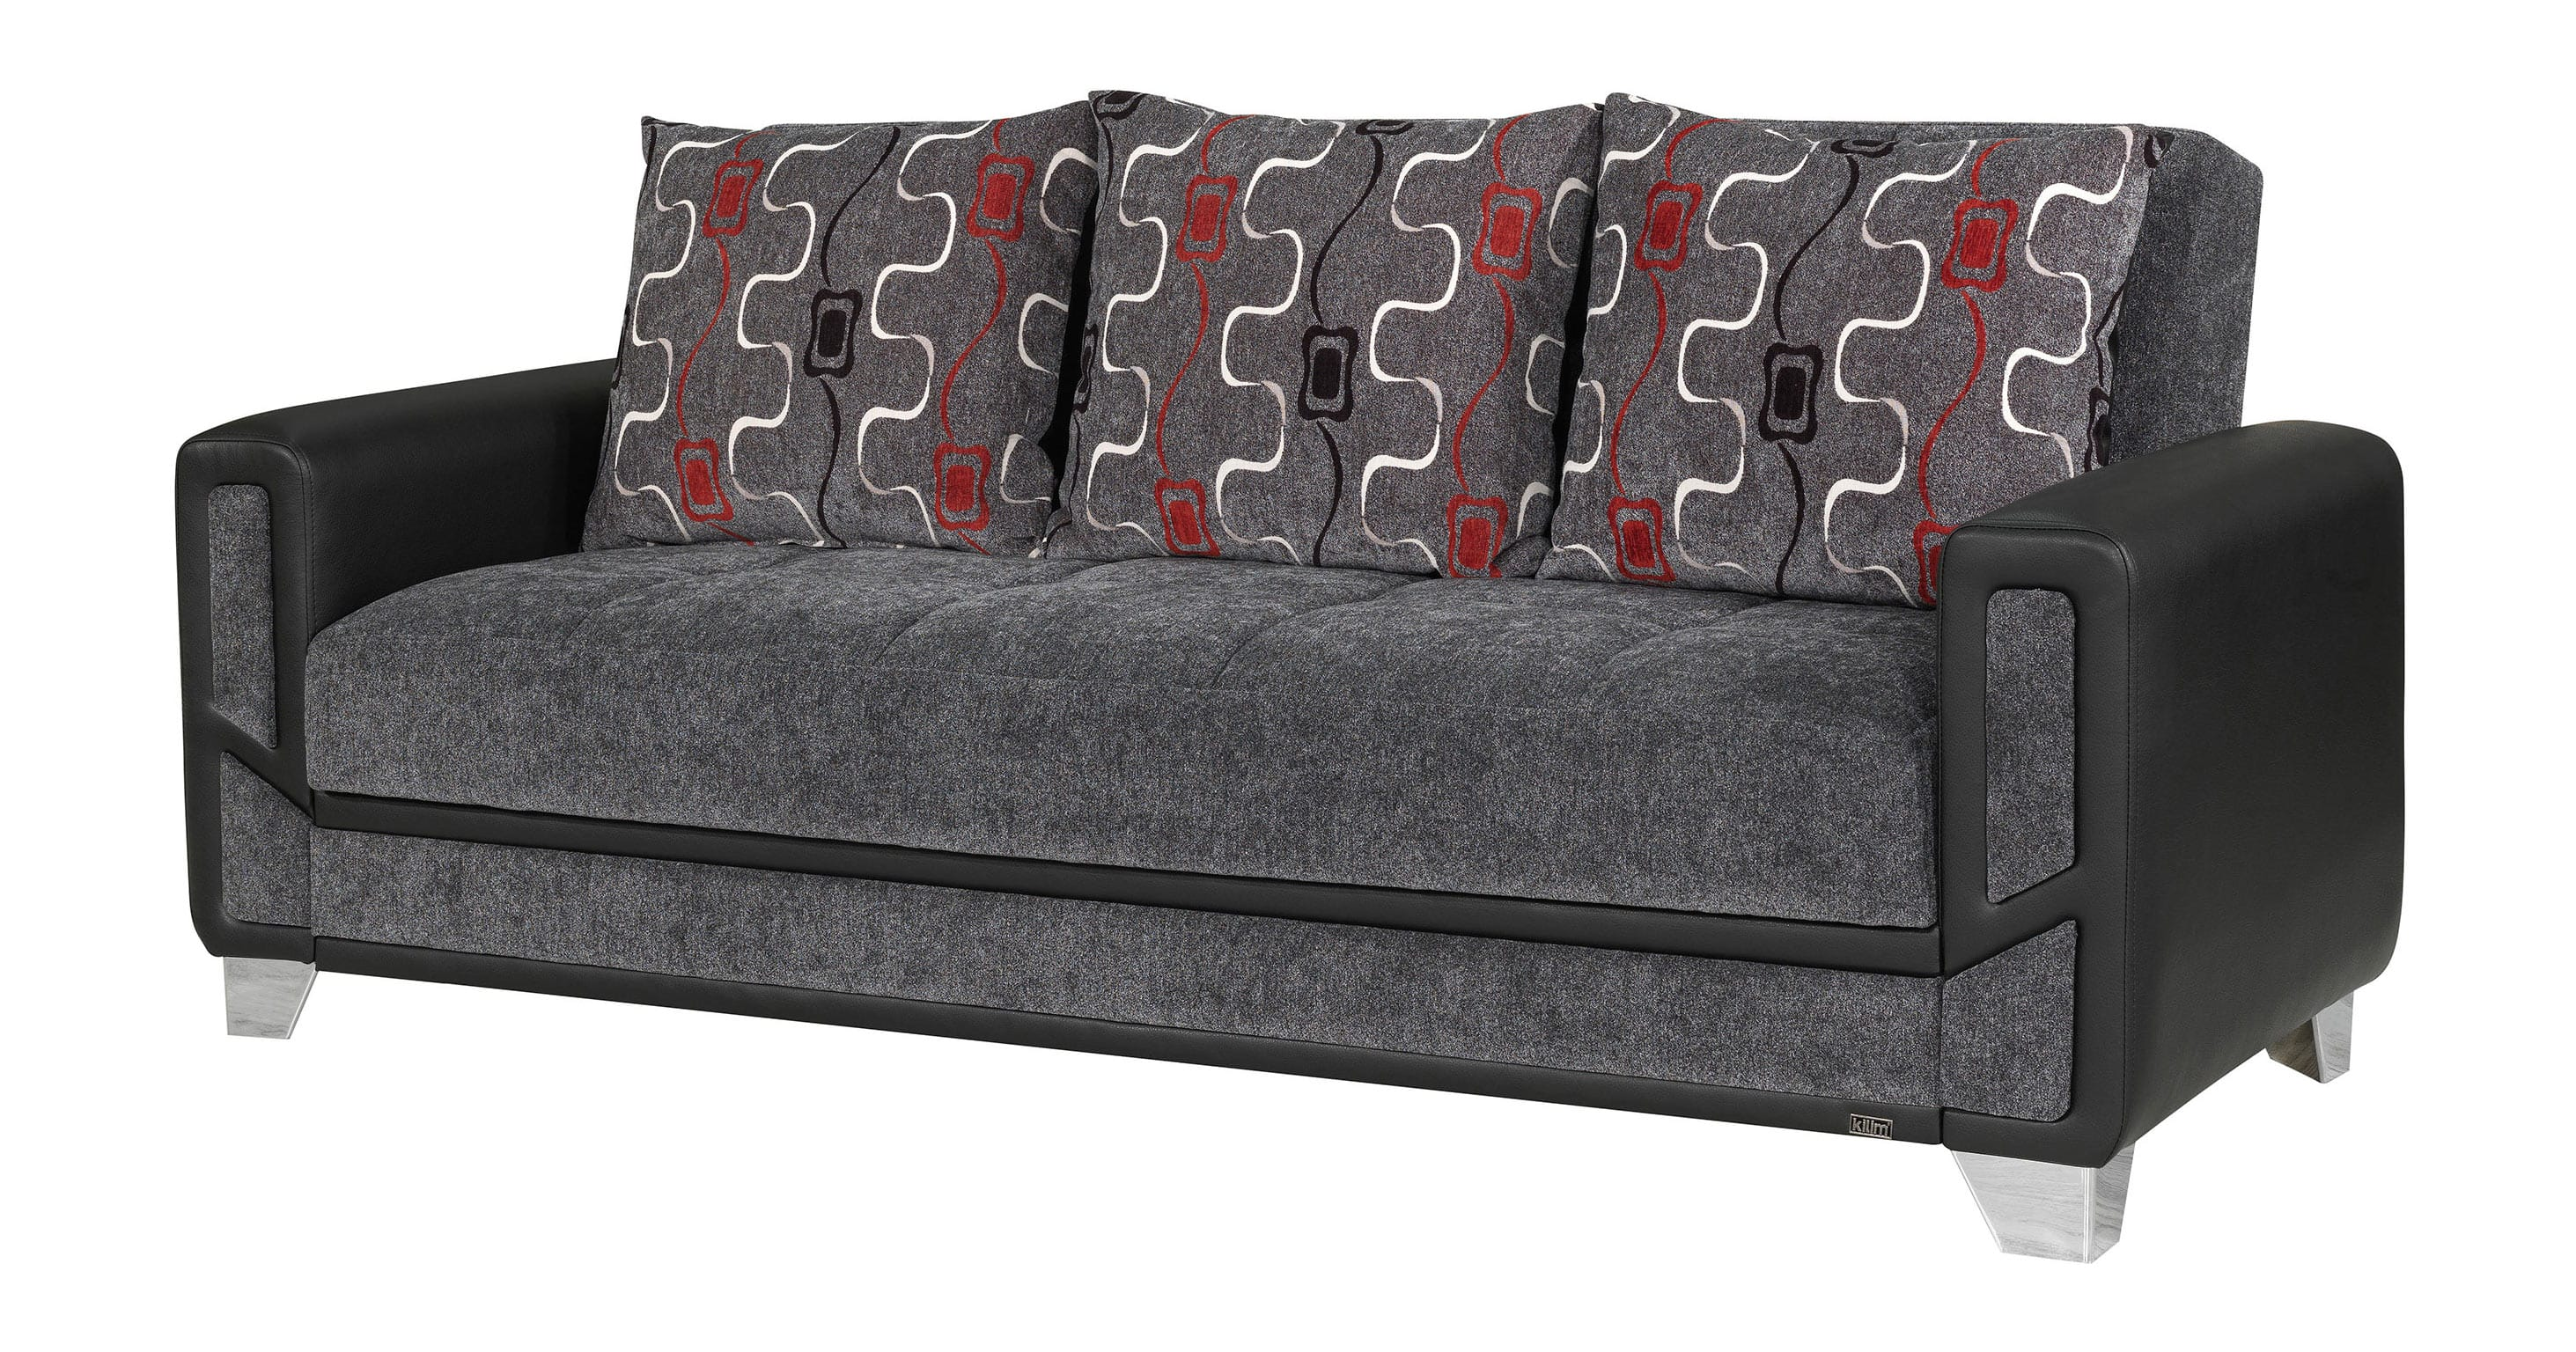 Mondo Modern Gray Convertible Sofa Bed by Casamode